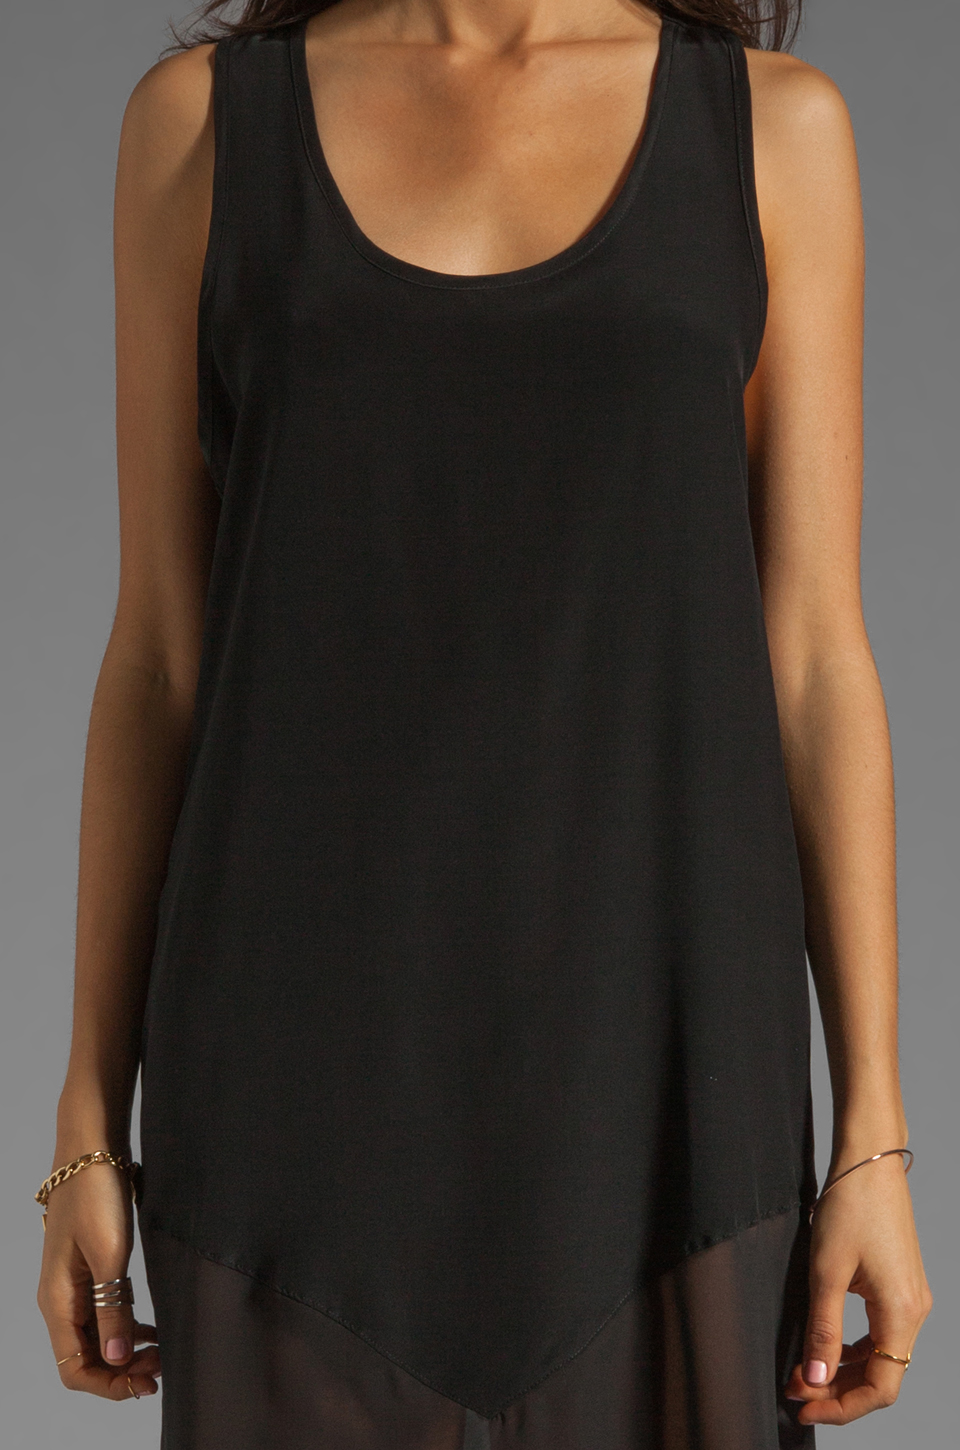 LNA Sherwood Tank Dress in Black